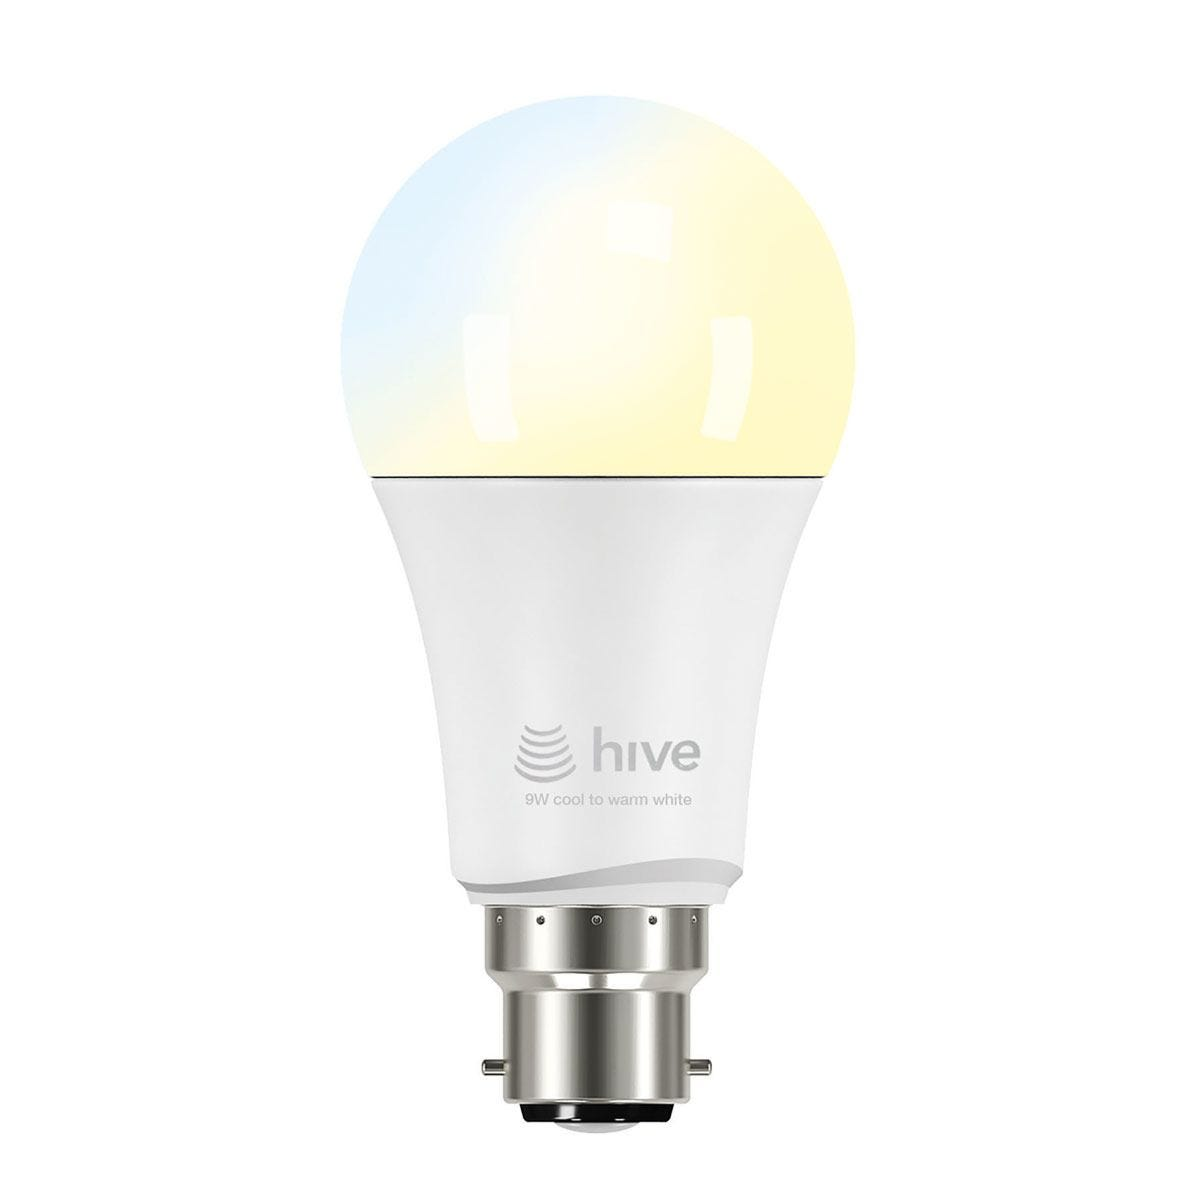 Hive Active Light 9W Bayonet Bulb - Cool to Warm White